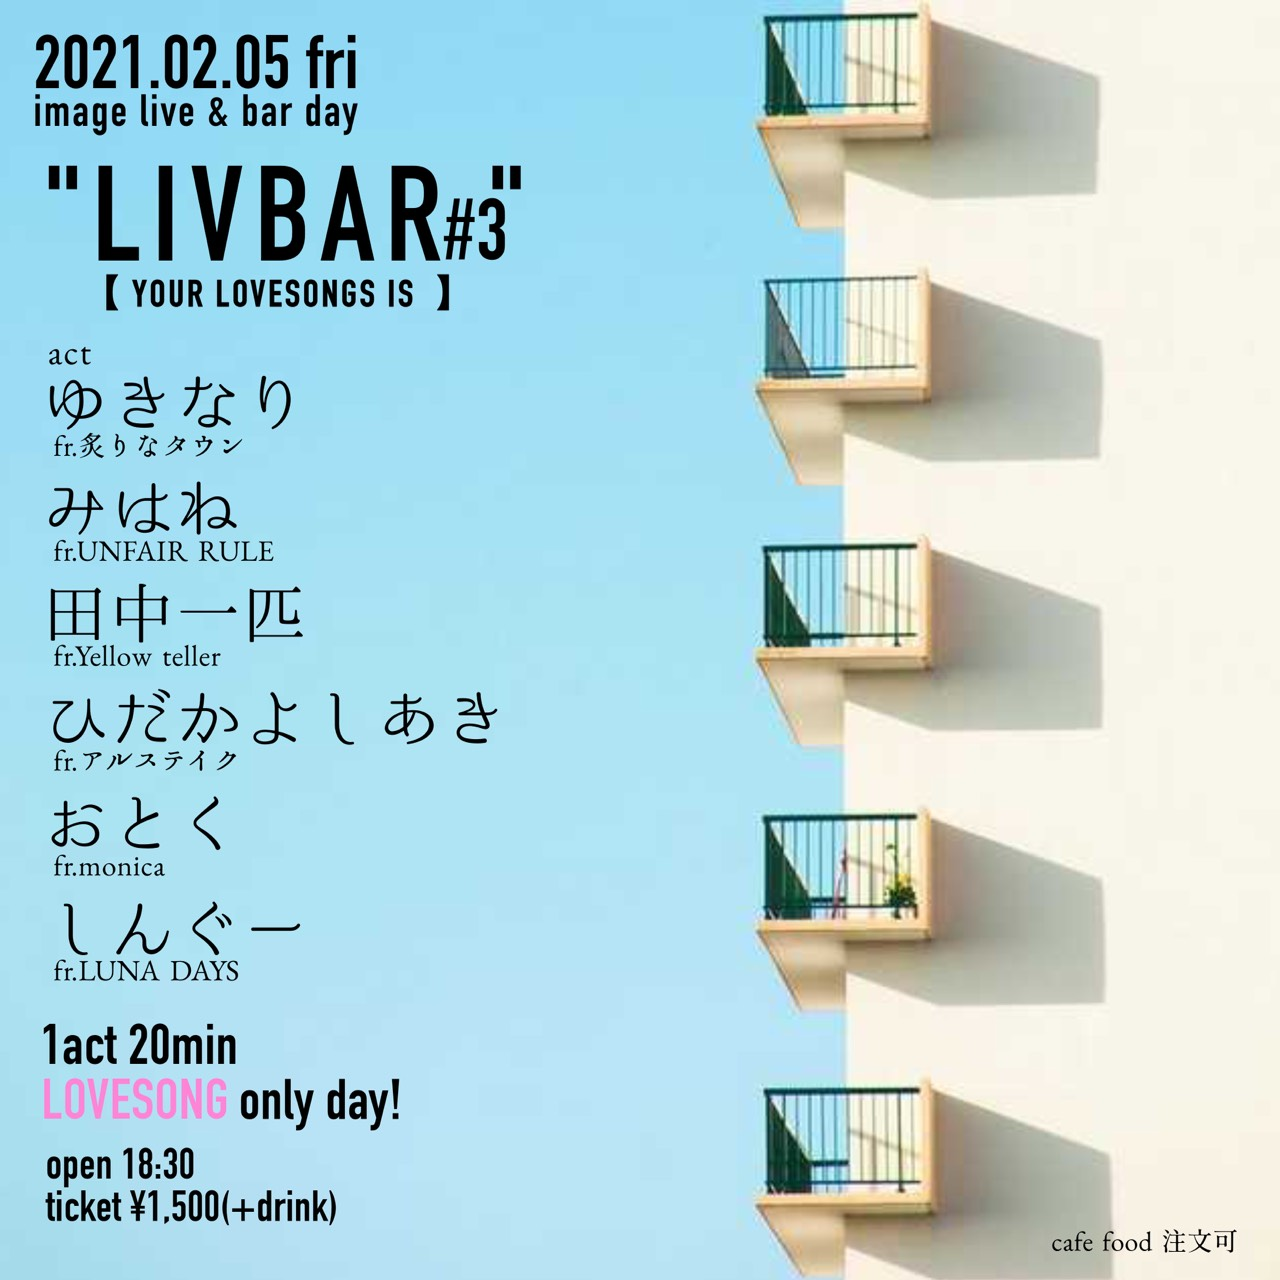 """image live & bar day """" LIVBAR #3 """" 【YOUR LOVESONGS IS】"""